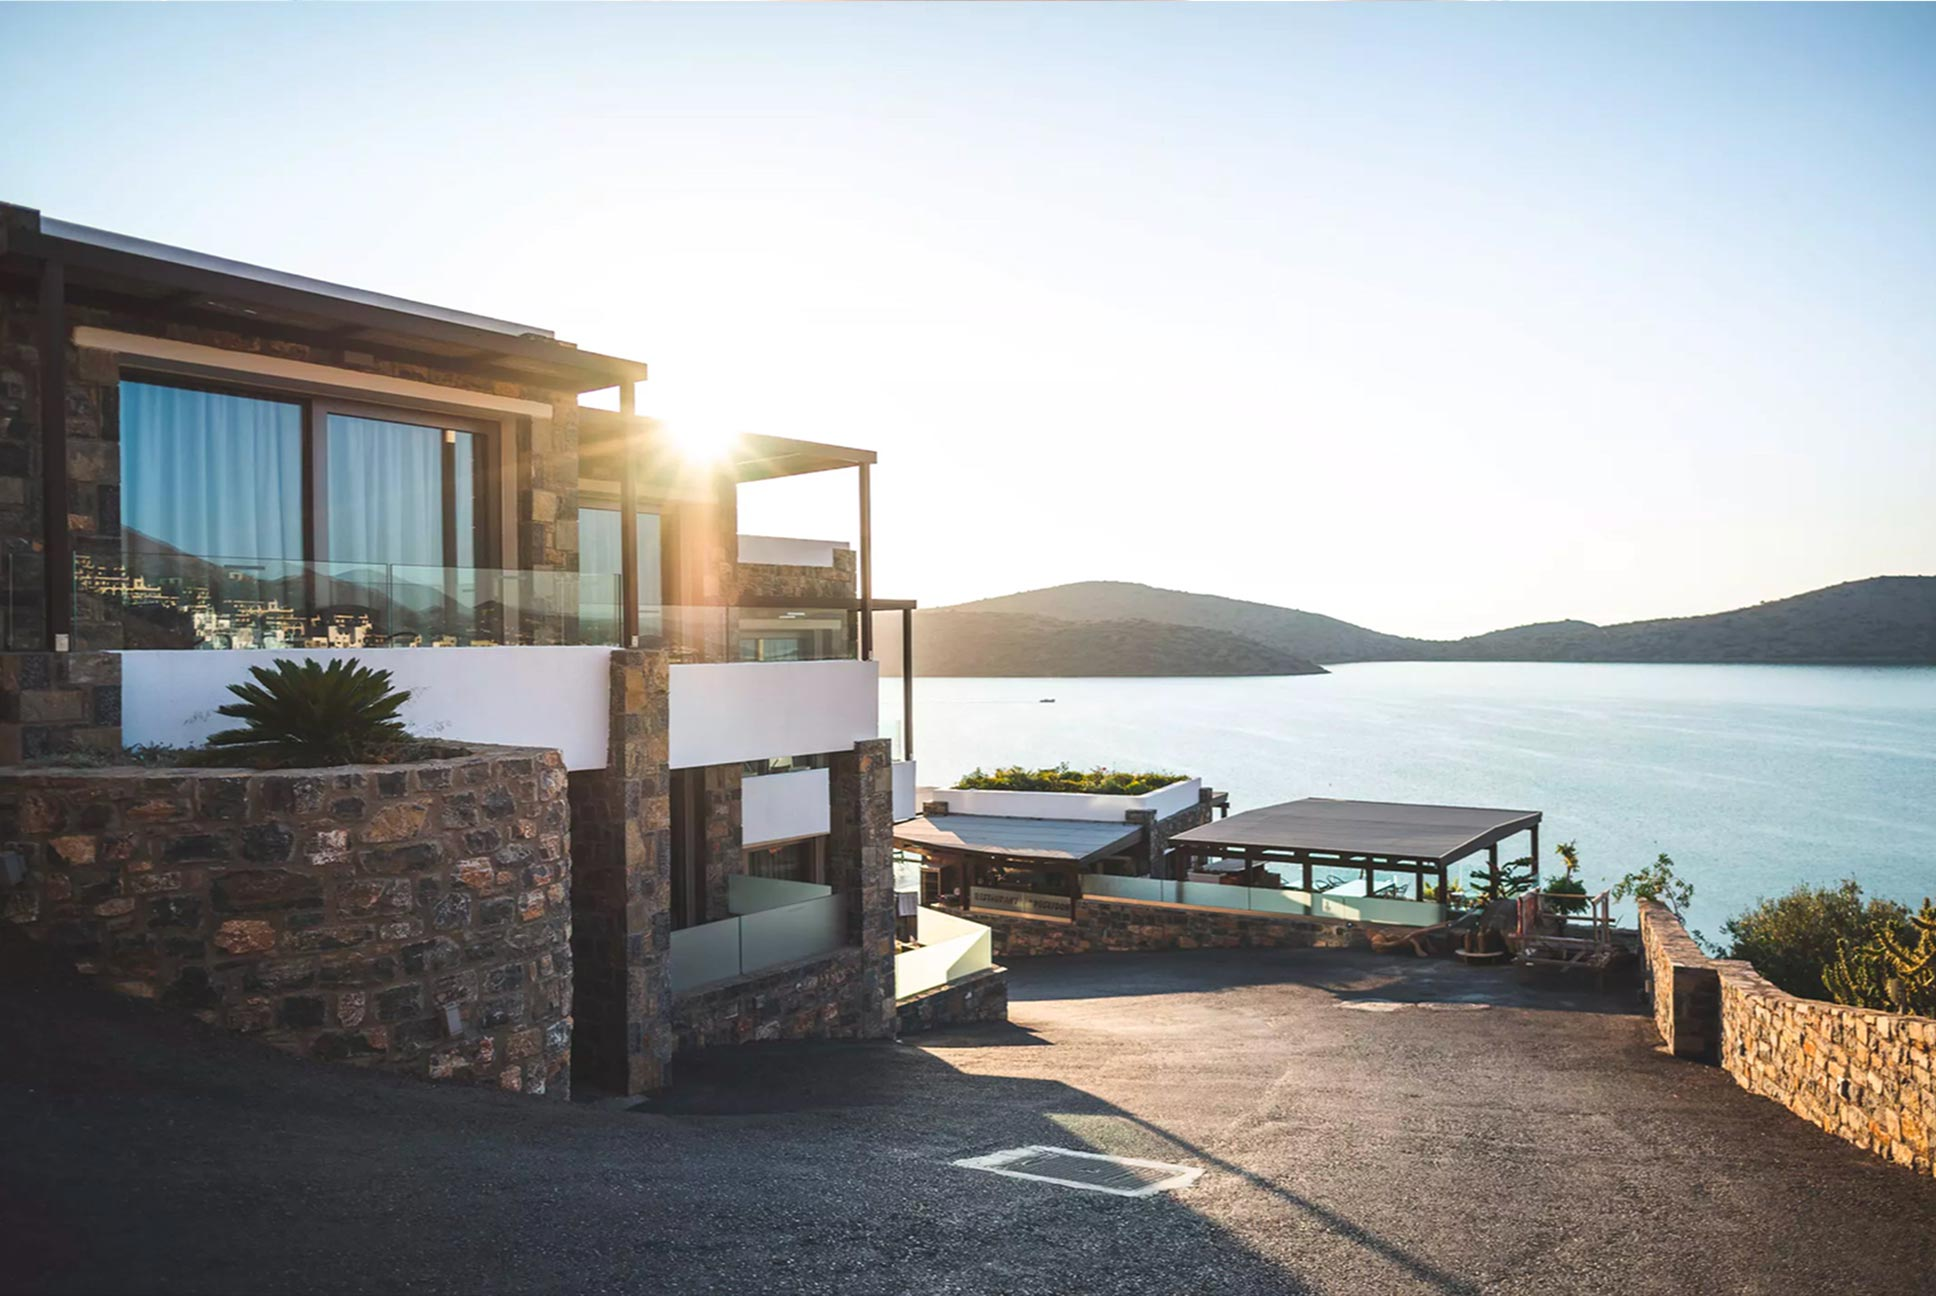 Airbnb insurance for luxury home on a hill near the water